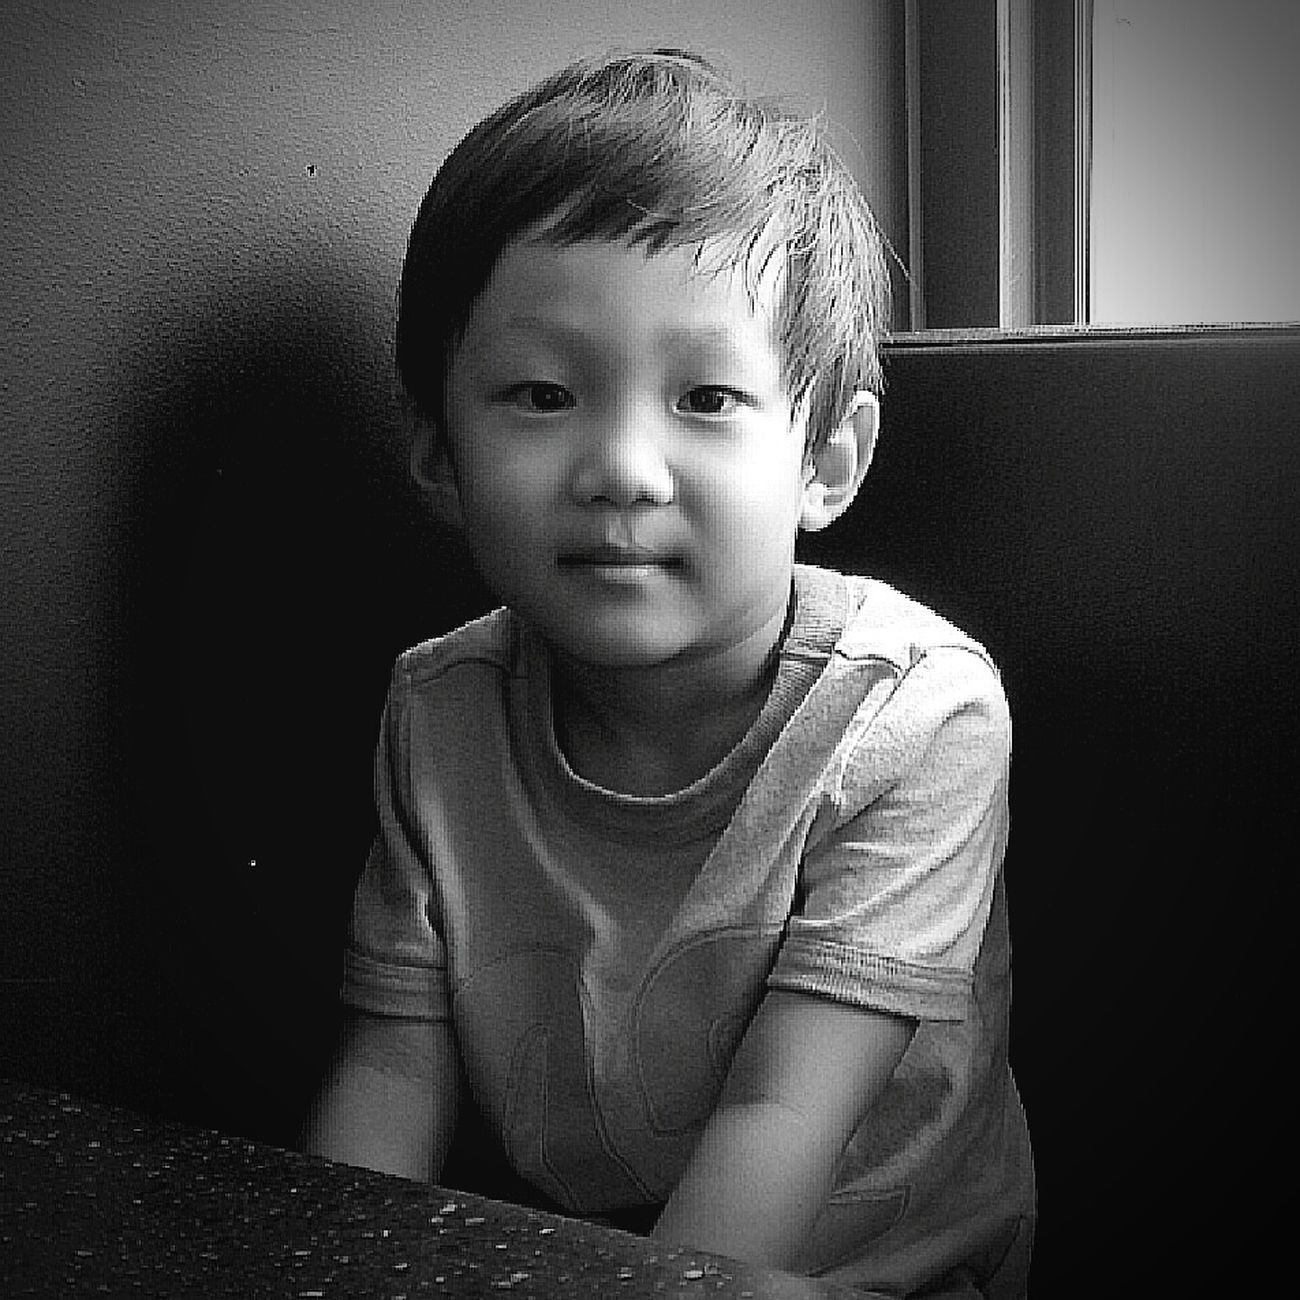 My lovely son Blackandwhite Portrait